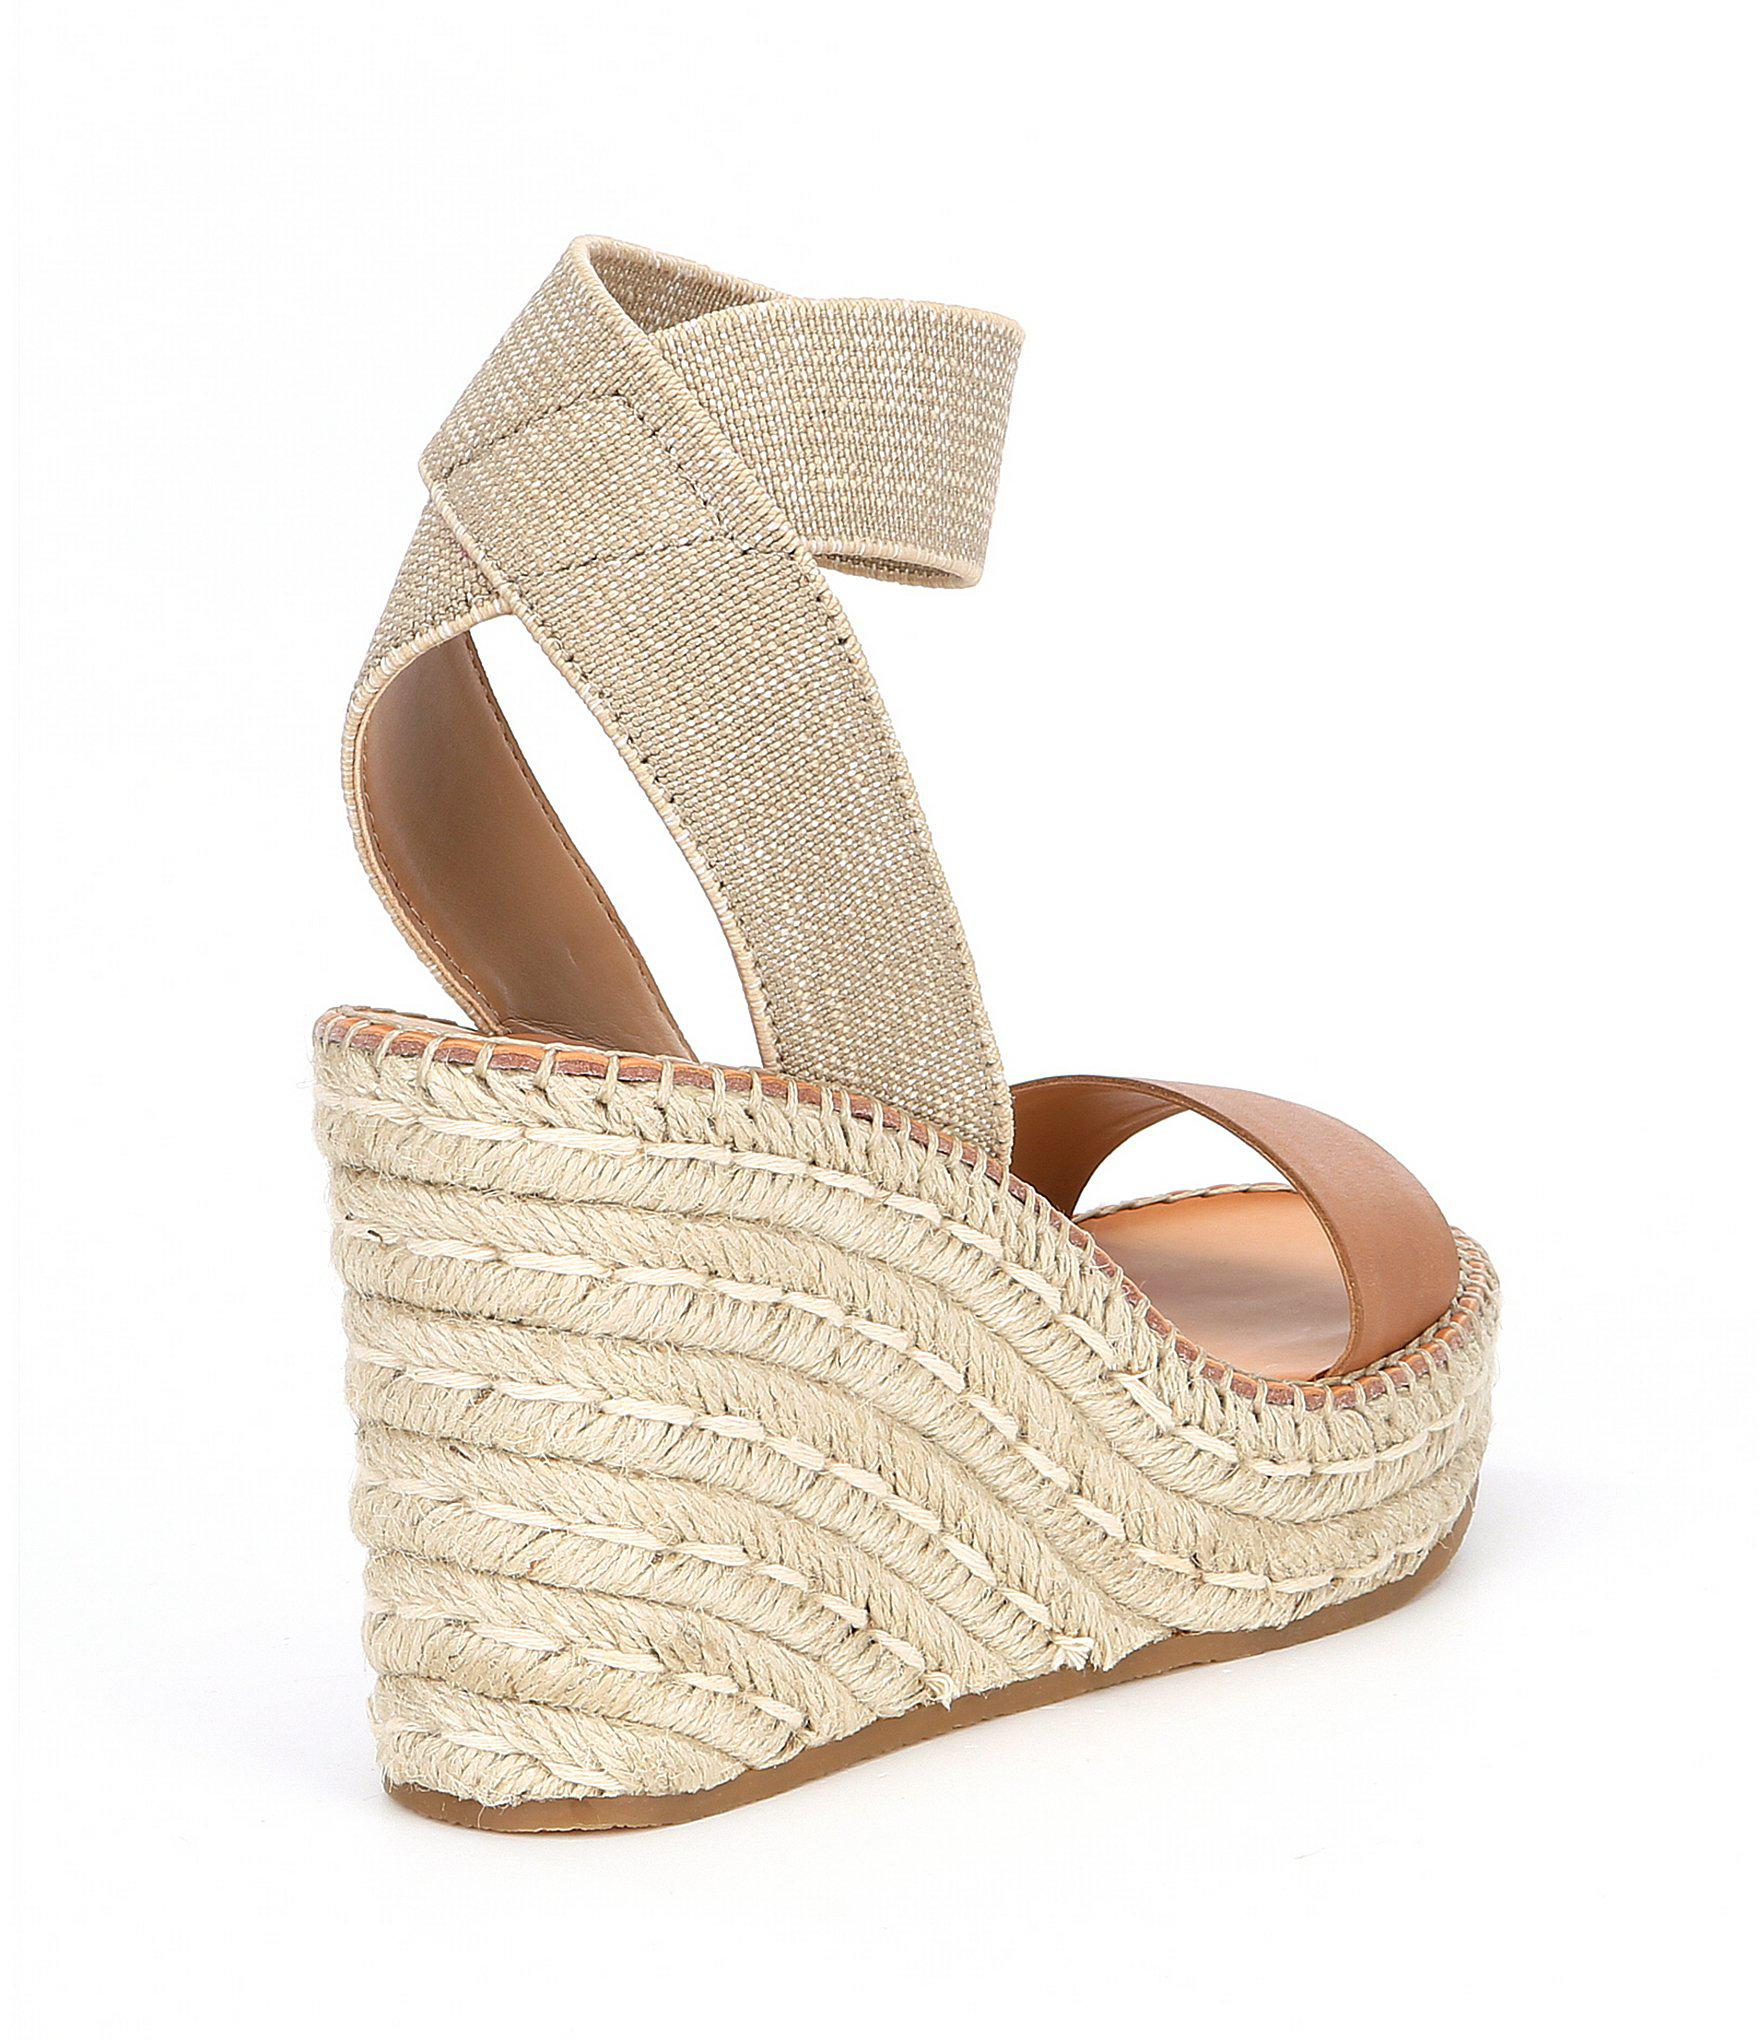 152087f8188 Lyst - Dolce Vita Pavlin Leather Espadrille Wedge Sandals